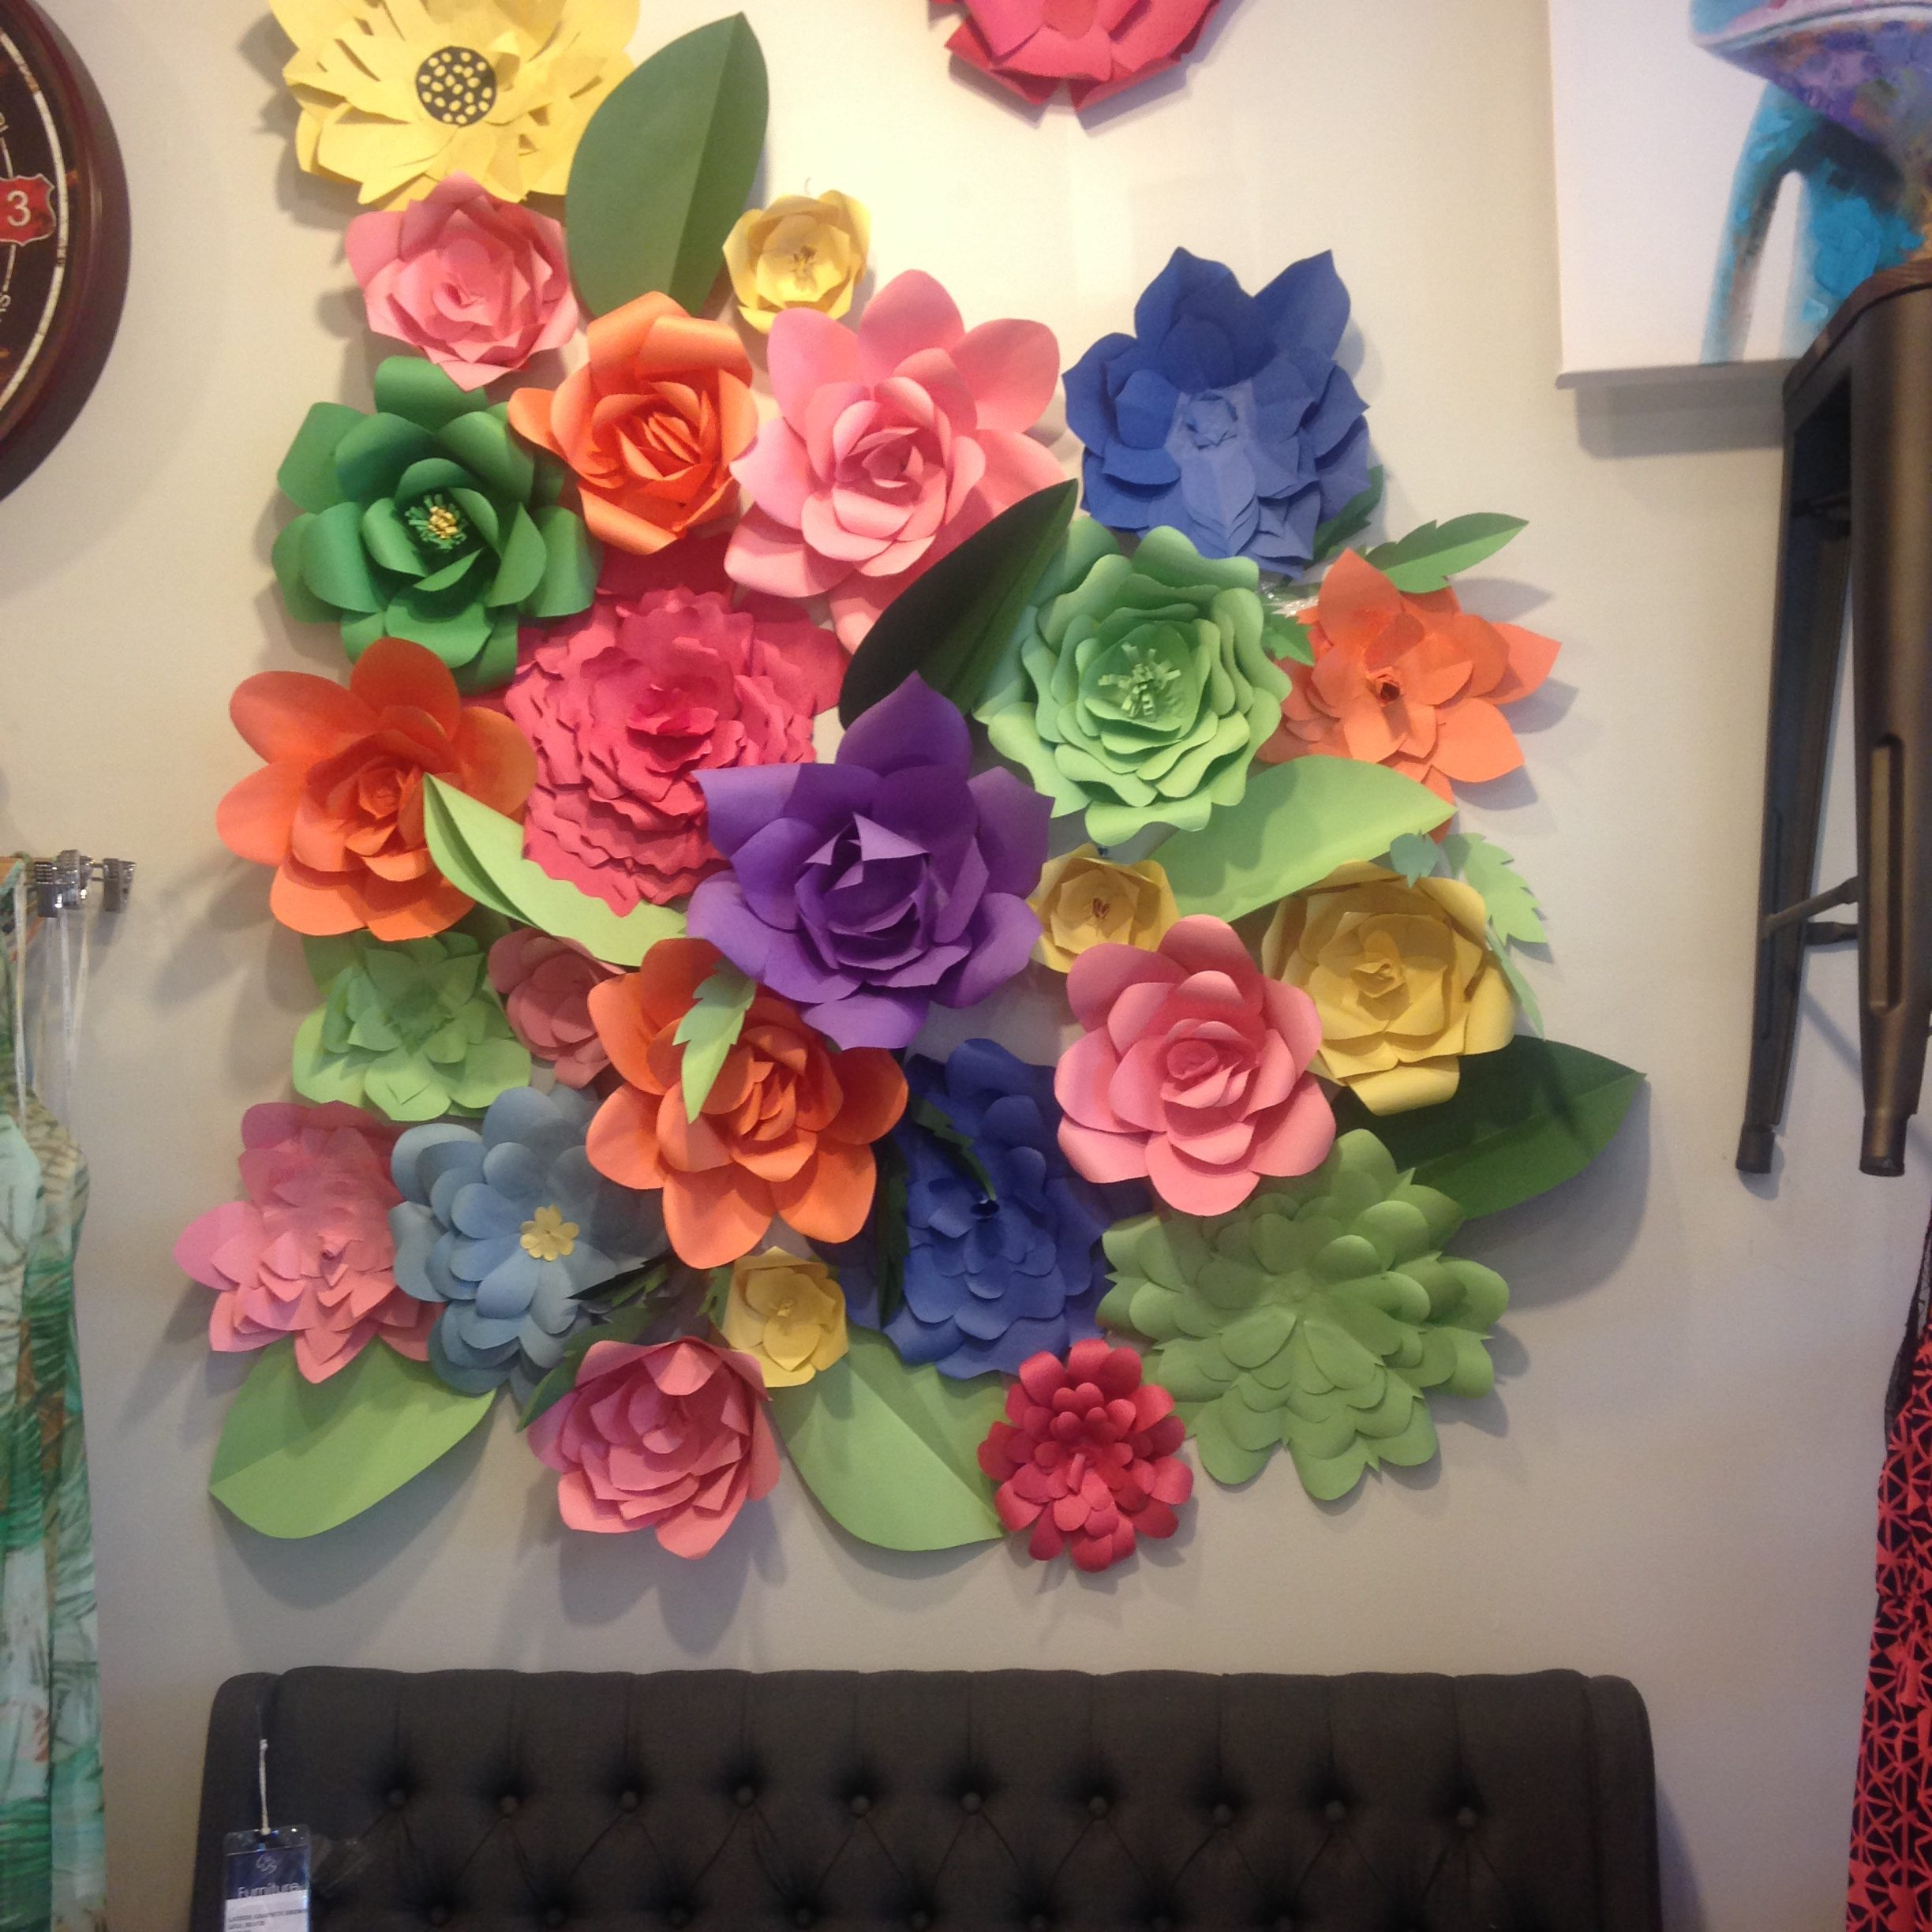 PULP PETALS BY NEDA SAEEDI coming to PULP: paper art party 2017